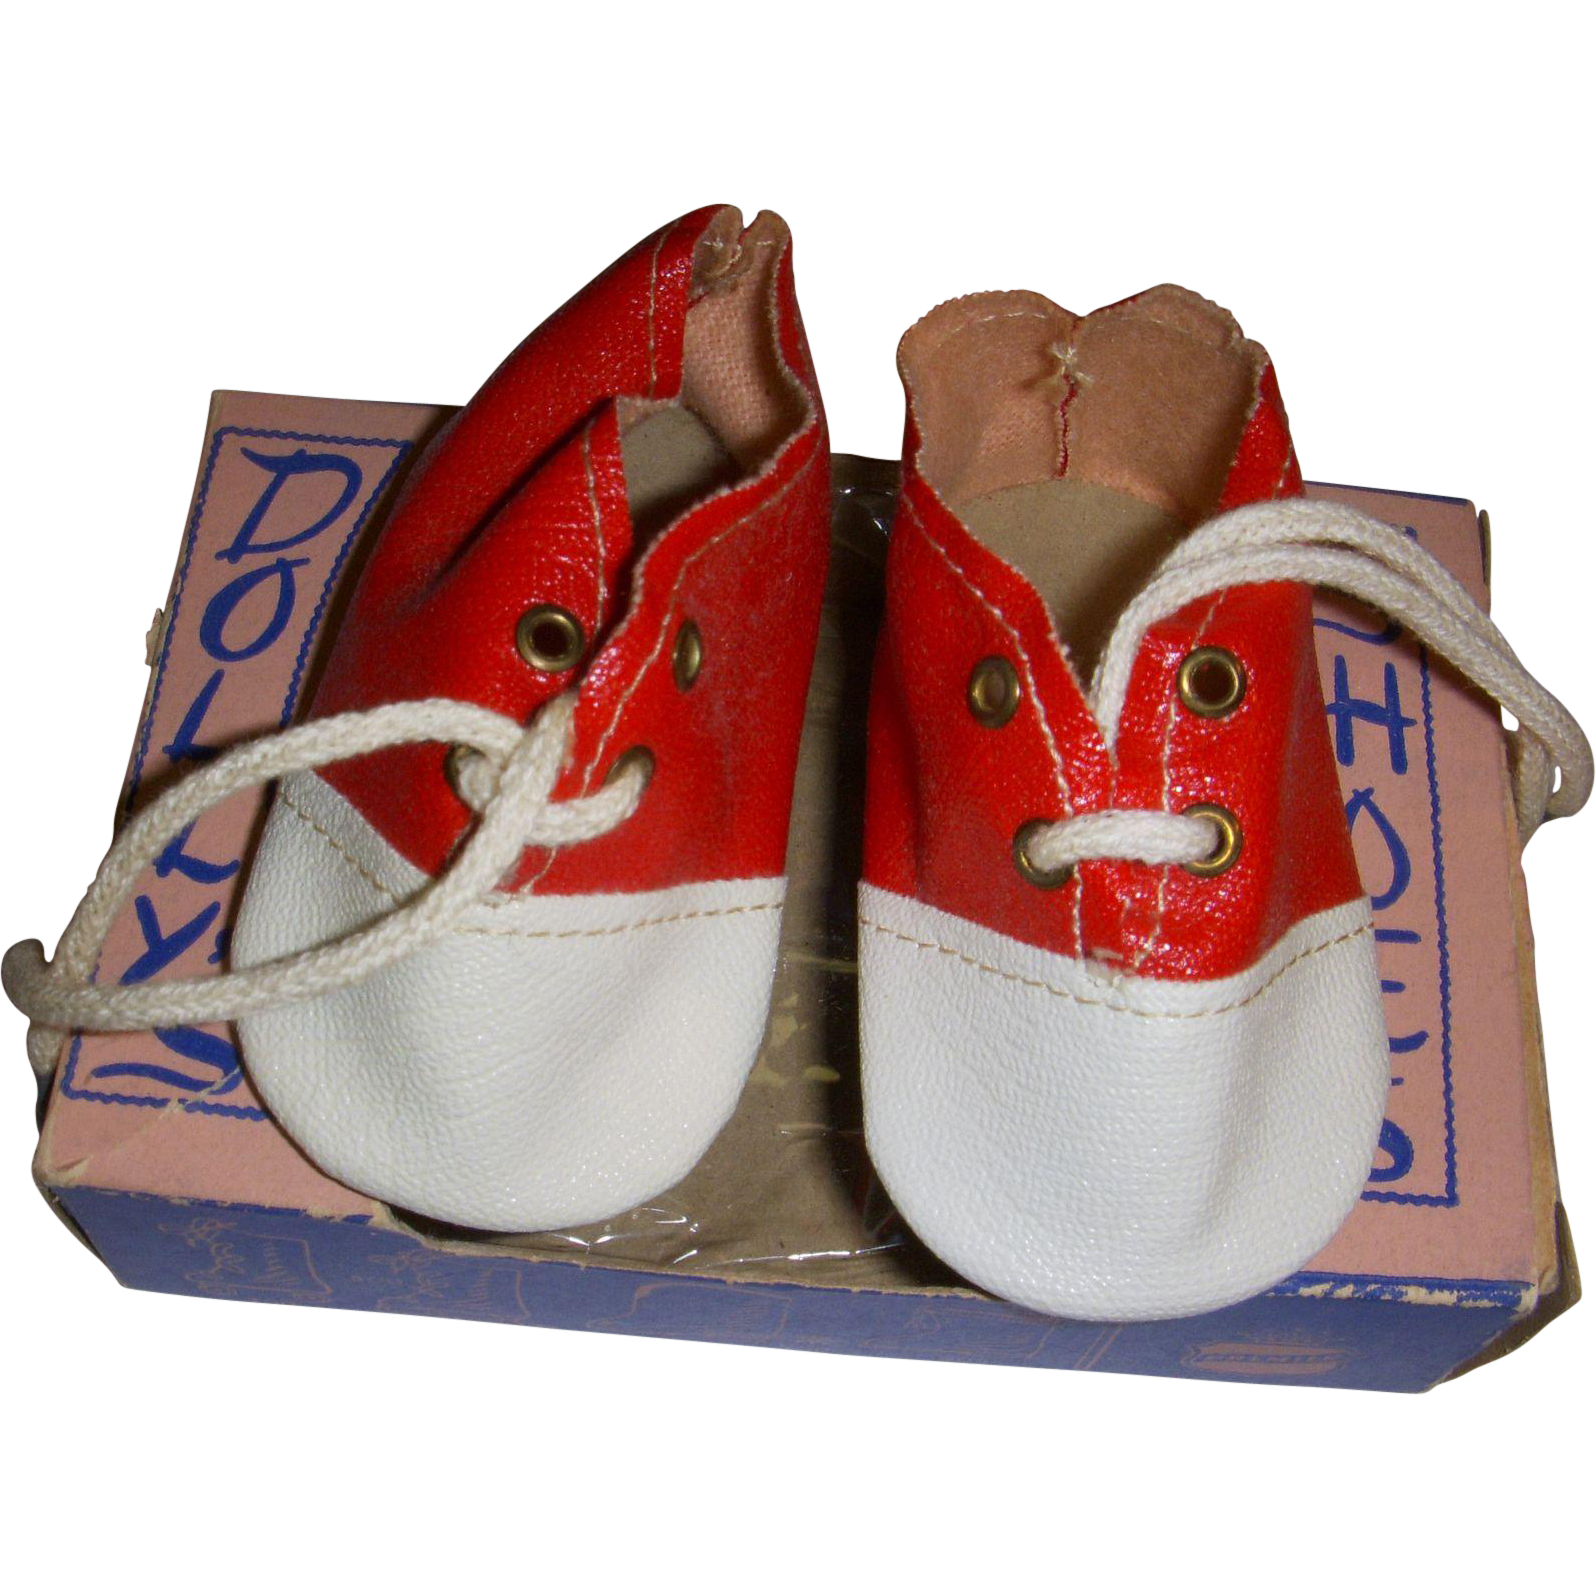 Vintage 1950s Doll Shoes in Original Box